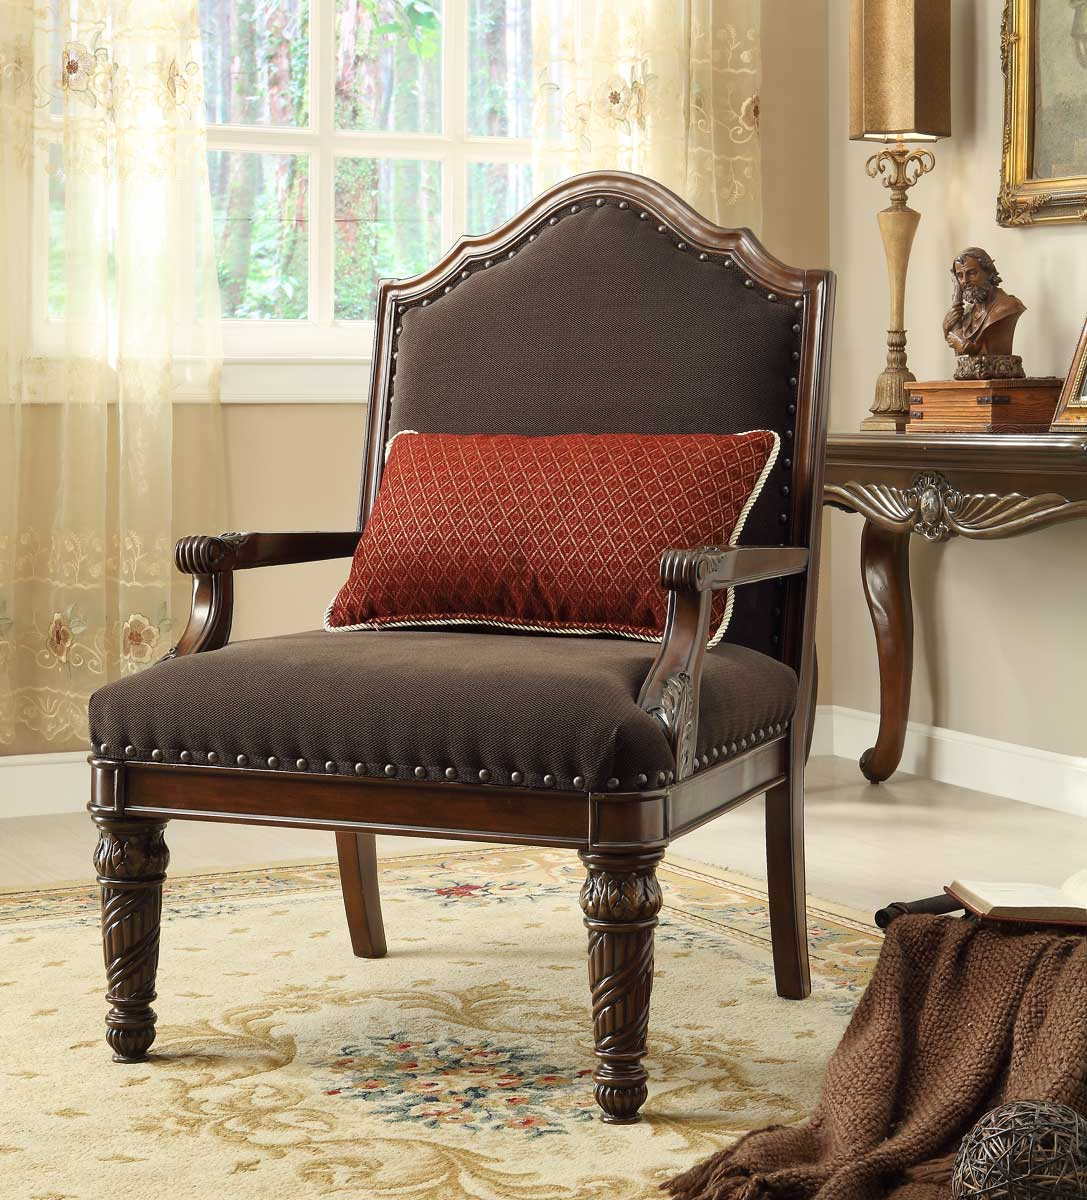 Homelegance Catalina II Chair - Chocolate - Chenille